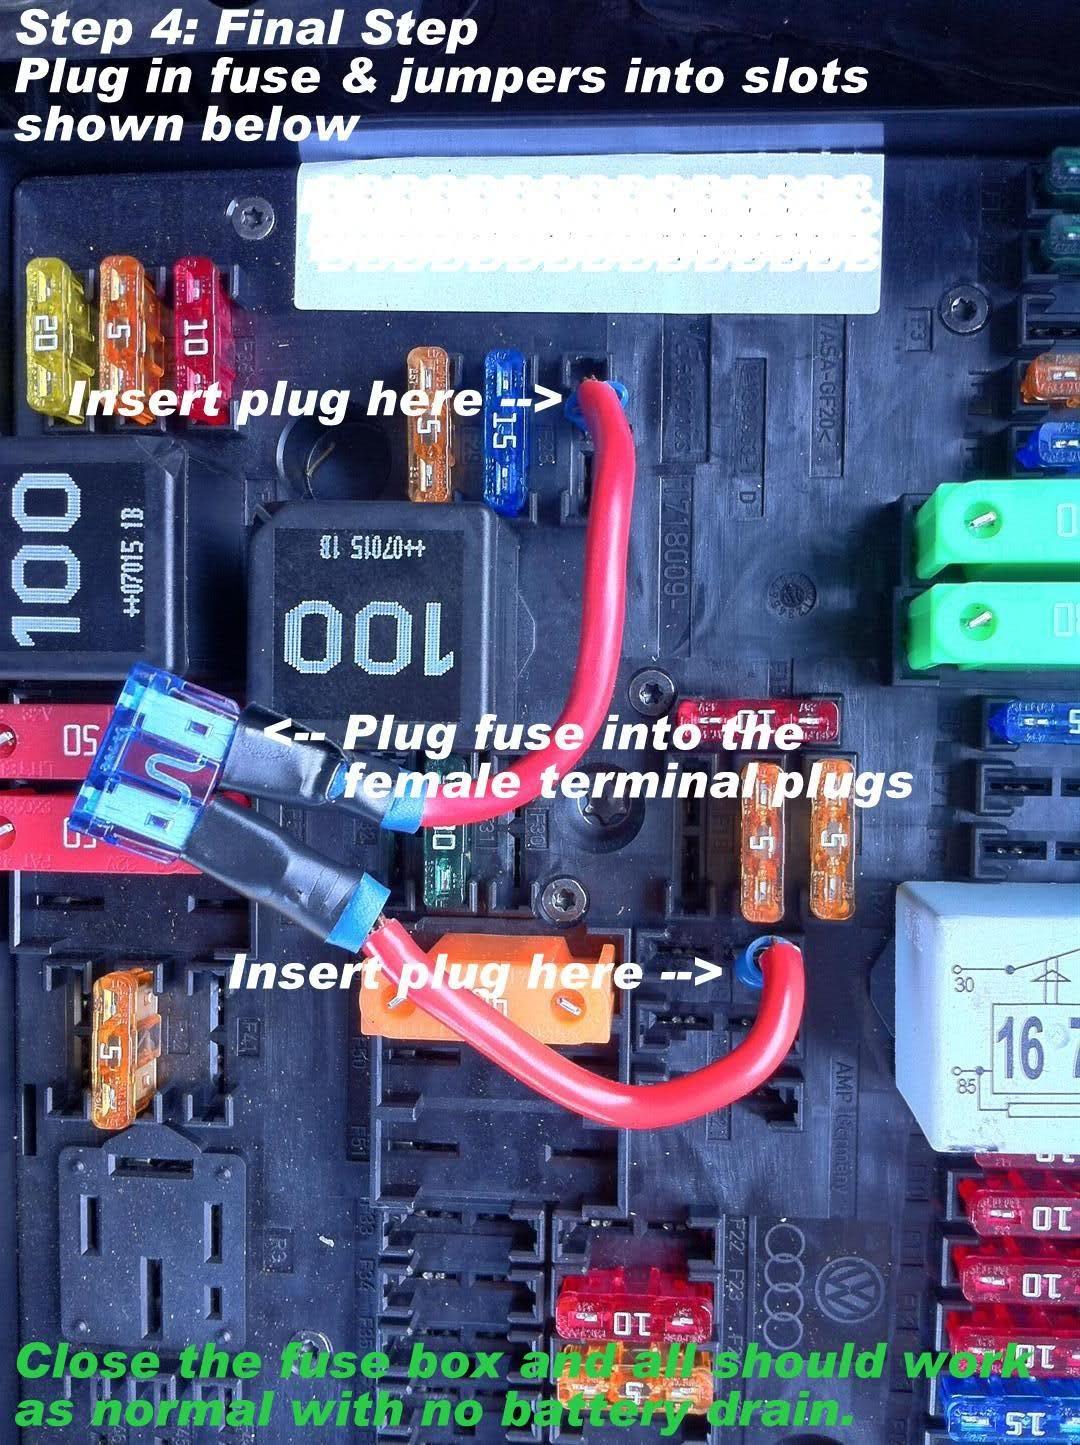 A Tested And Proven Quick Fix For Rcd510 Rns510 Power Drain Page 1 Vw Caddy Fuse Box 2012 Fit The As Shown Check Radio Works Turns Off When You Take Key Out